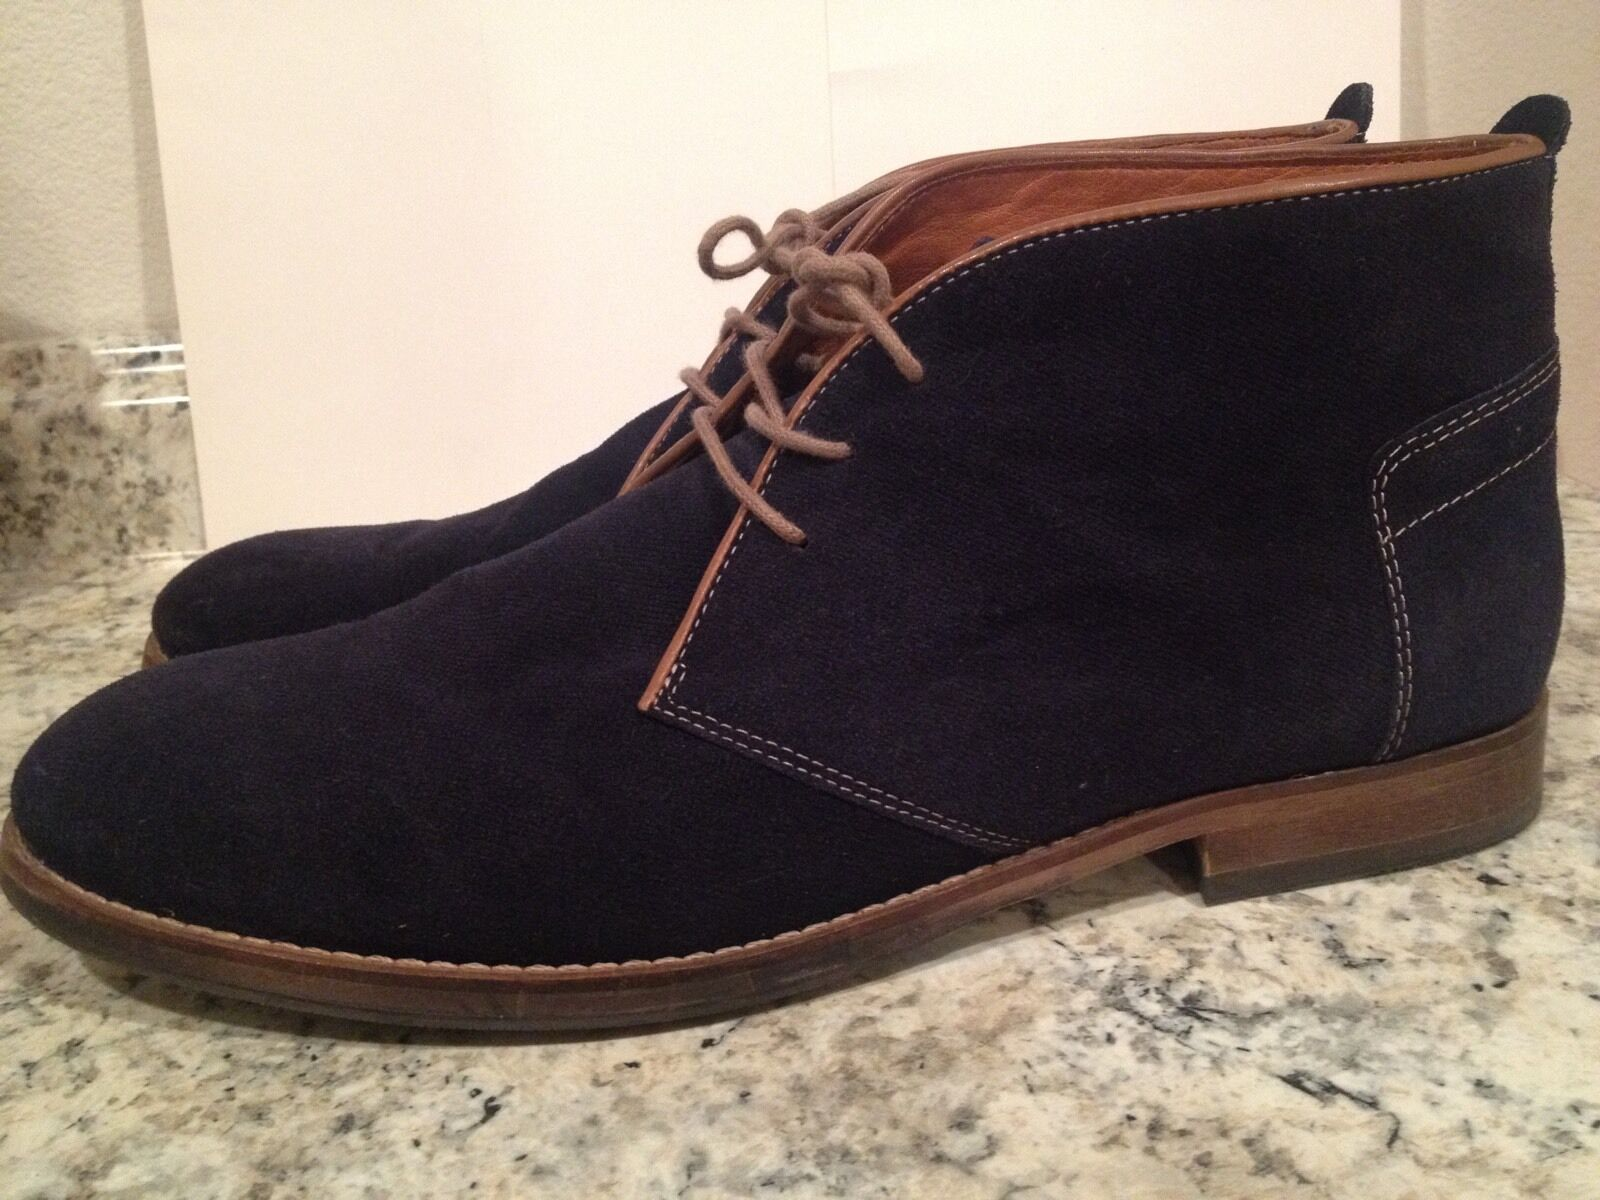 H By Hudson Ankle Boots Chukka Lace Up Casual Suede Dark bluee Navy 45 US 10-11